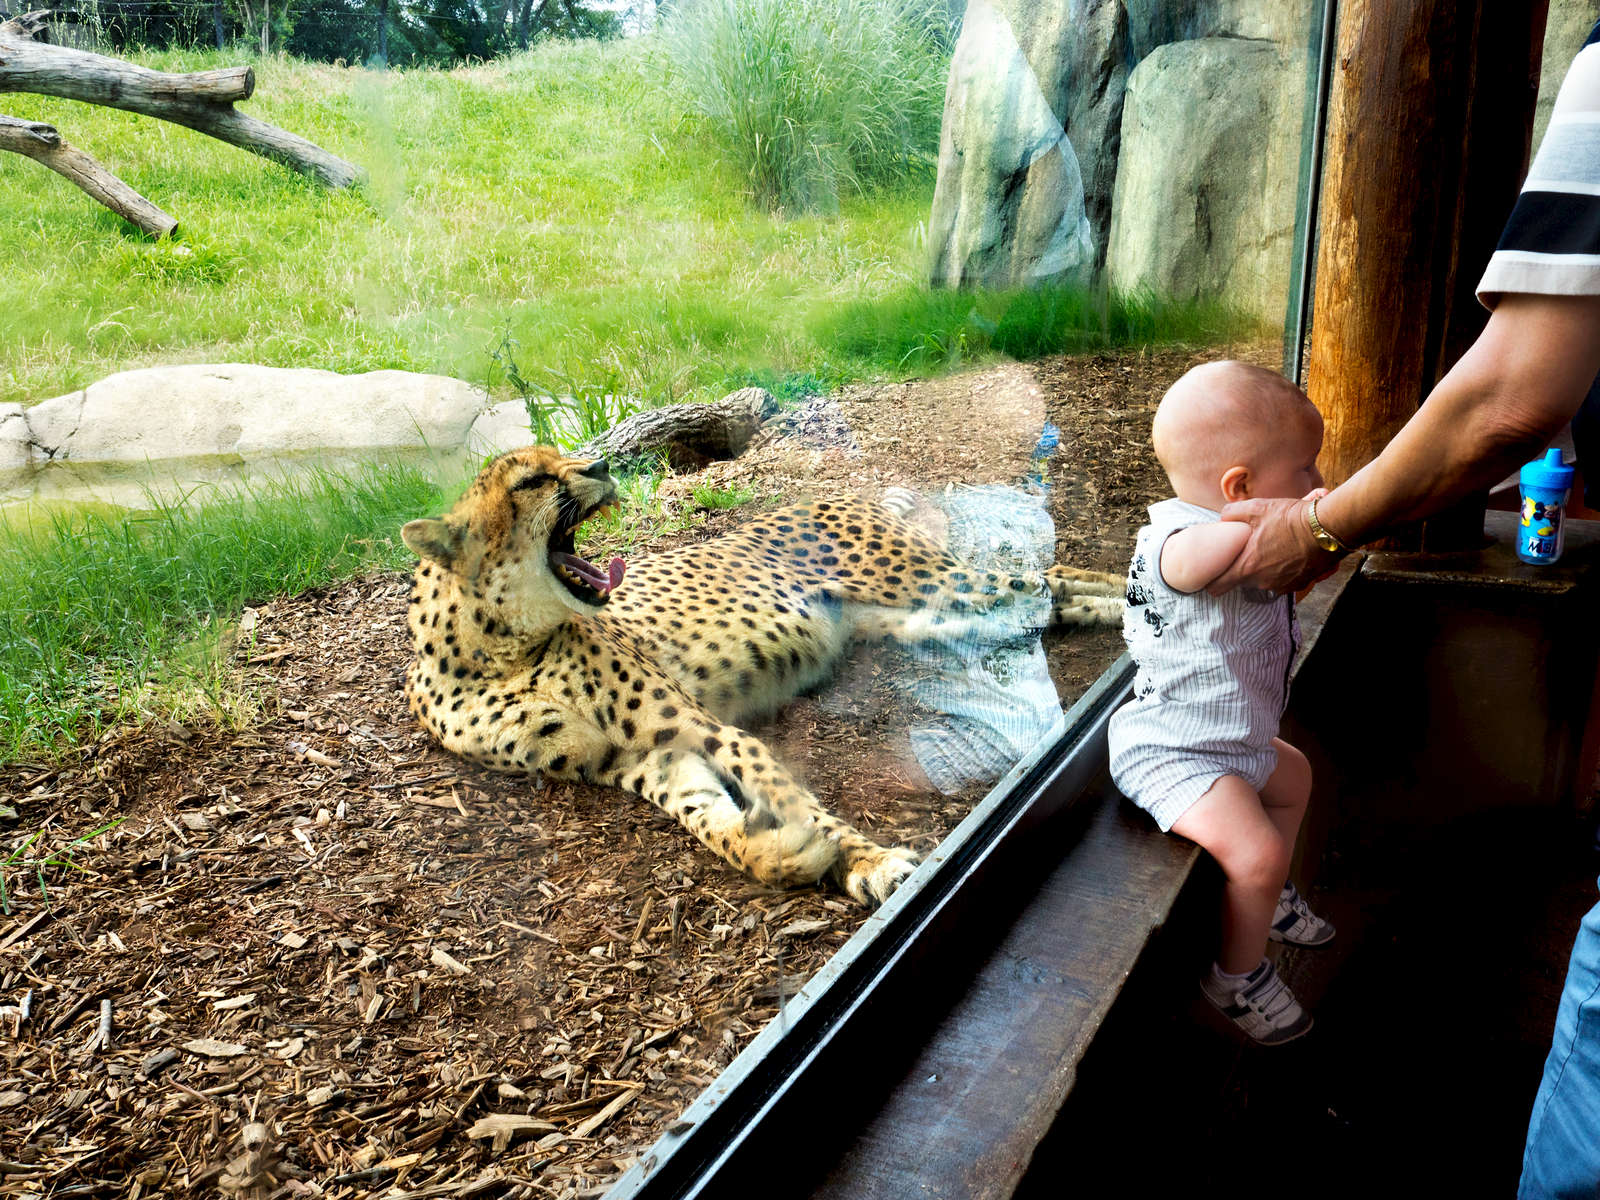 A cheetah yawns at a baby visiting Dallas Zoo.Dallas Zoo is a 106-acre zoo located 3 miles south of downtown Dallas, in Marsalis Park. Established in 1888, it is the oldest and largest zoological park in Texas and is managed by the non-profit Dallas Zoological Society.Dallas is a major city in Texas and is the largest urban center of the fourth most populous metropolitan area in the United States. The city ranks ninth in the U.S. and third in Texas after Houston and San Antonio. The city's prominence arose from its historical importance as a center for the oil and cotton industries, and its position along numerous railroad lines.For two weeks in the summer of 2015, photographer Peter Dench visited Dallas to document the metroplex in his epic reportage, DENCH DOES DALLAS.Photographed using an Olympus E-M5 Mark II©Peter Dench/Getty Images Reportage